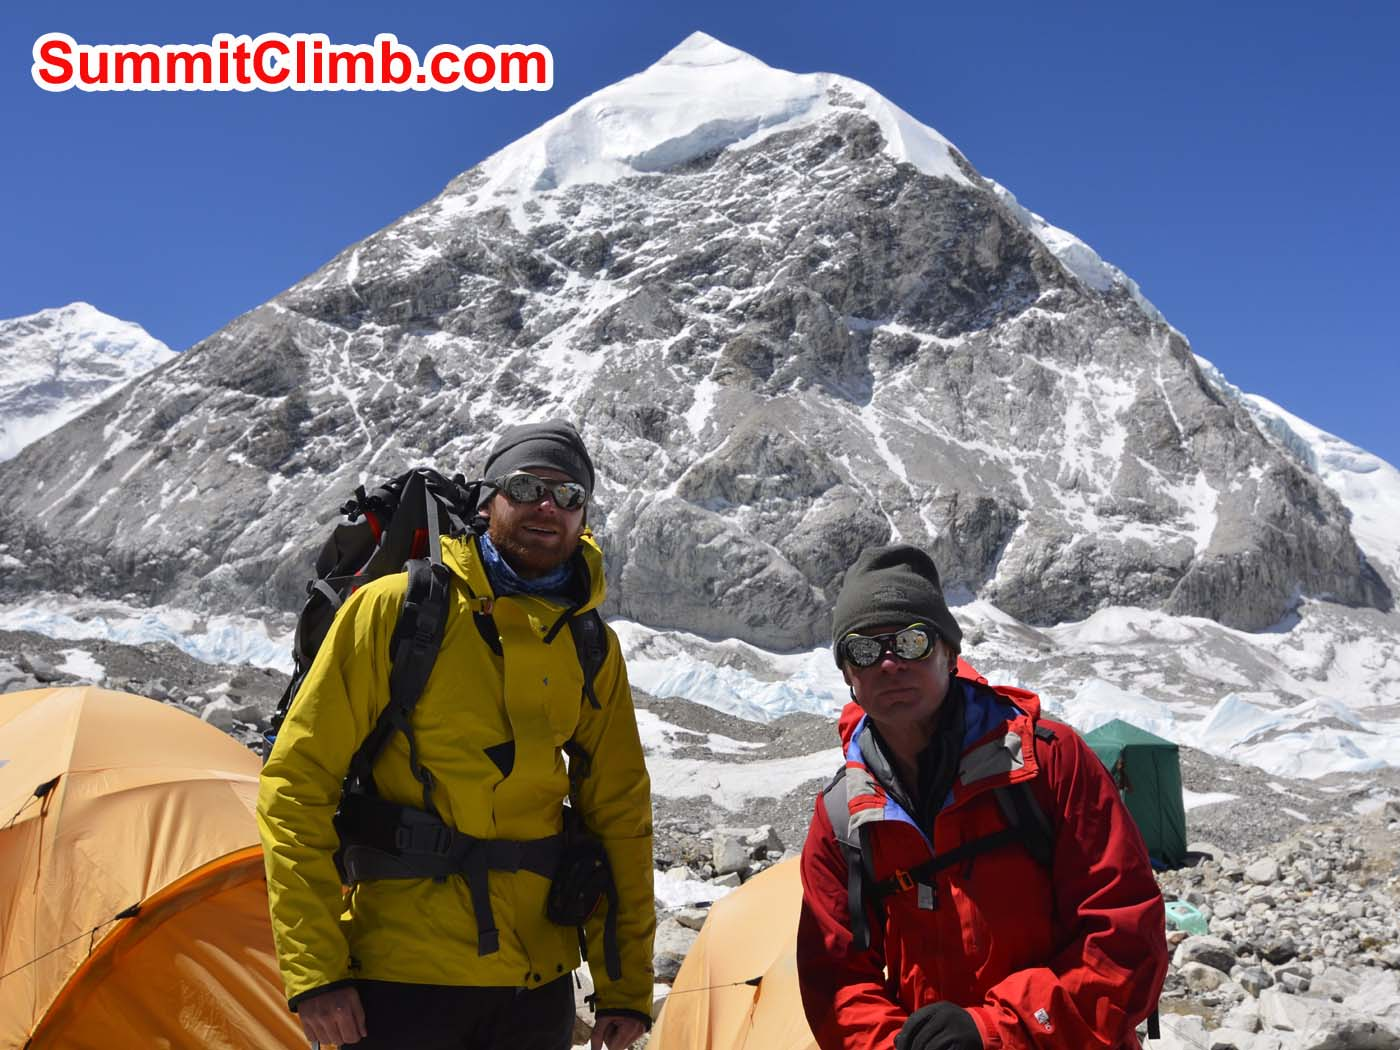 Jan and Pemba Sherpa in advanced basecamp. Preparing to head for the summit. Dmitri Nichiporov photo